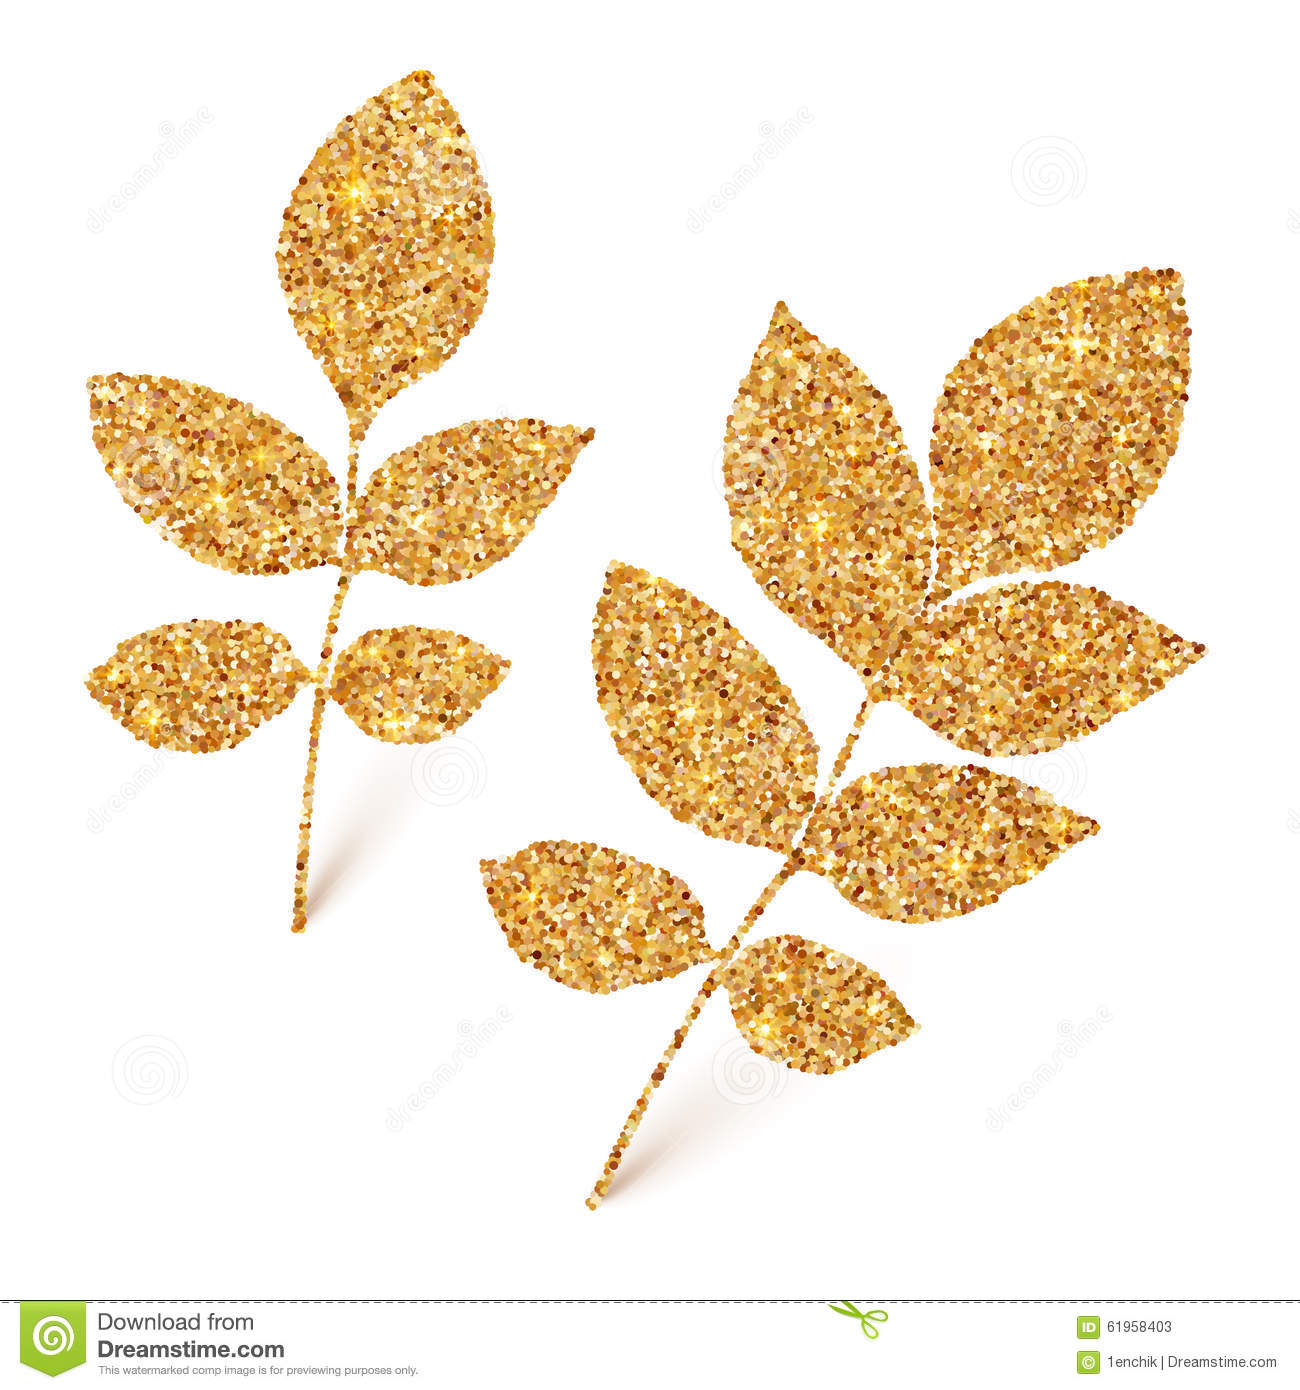 Fall Leaves Iphone 7 Wallpaper Golden Glitter Leaves Isolated On White Background Stock